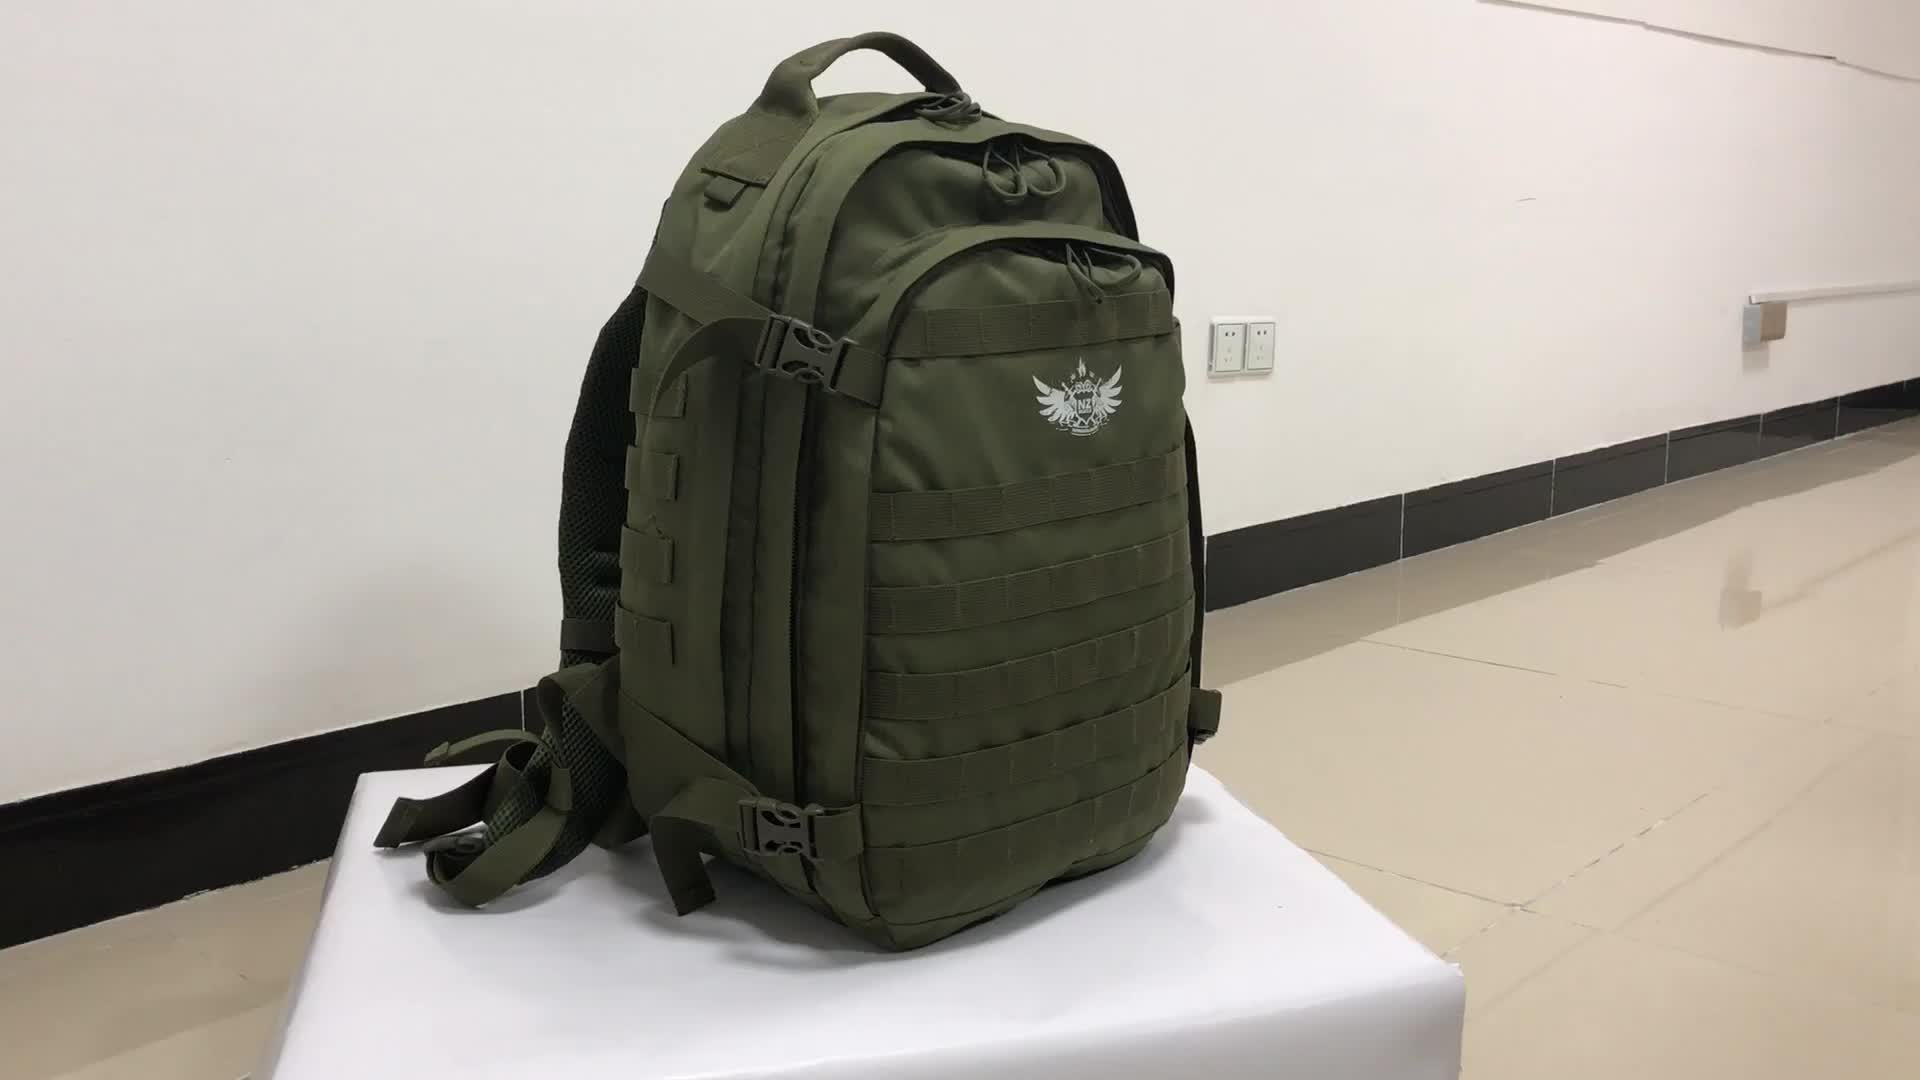 Outdoor lightweight daily use army green hydration pack military backpack